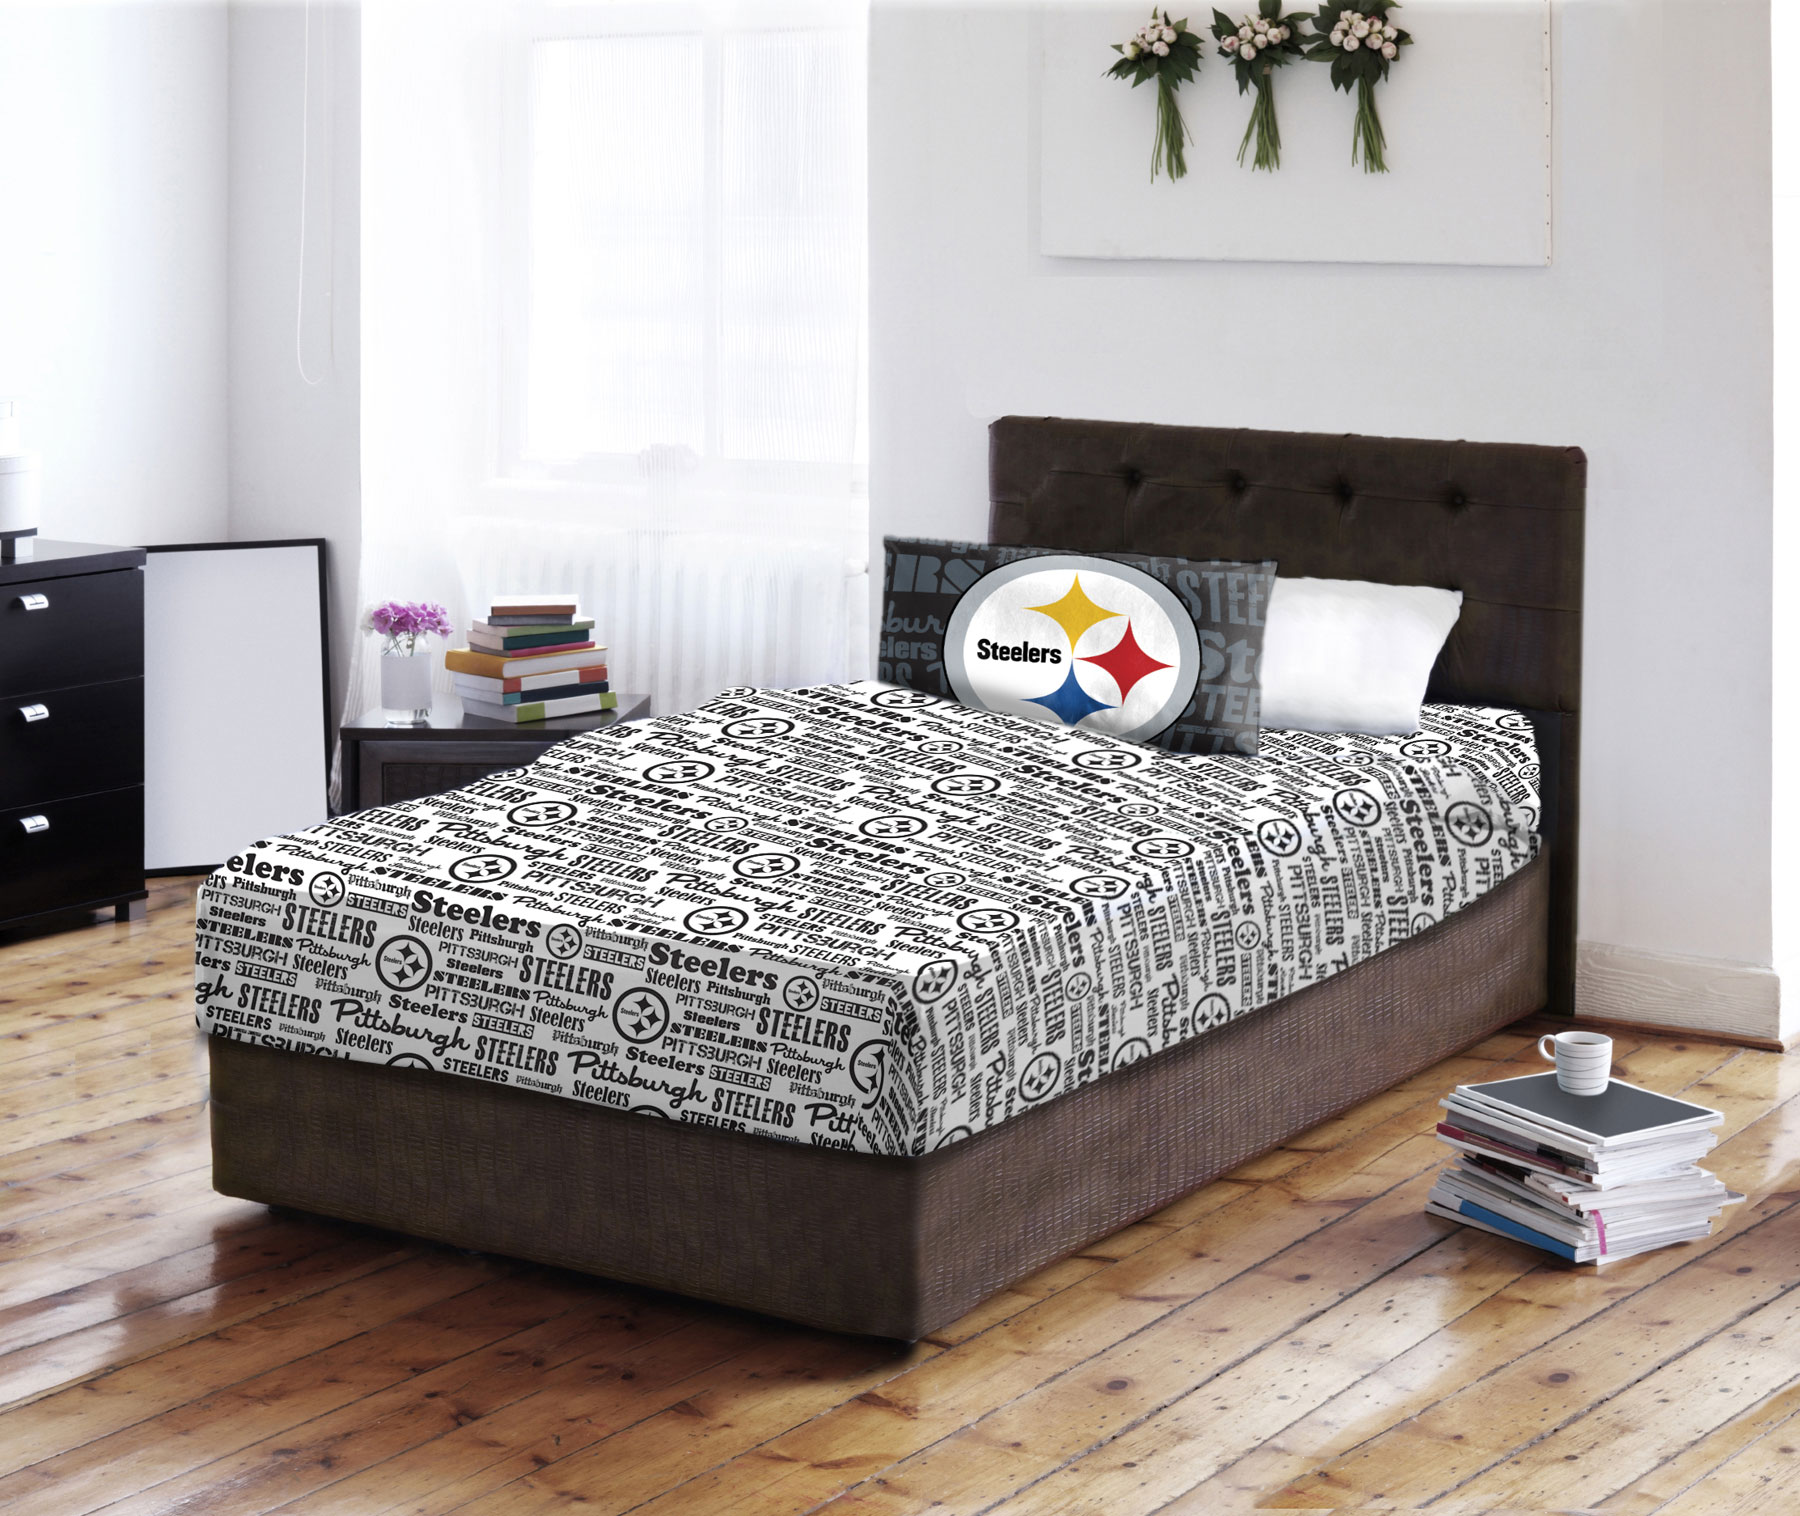 NFL Pittsburgh Steelers Sheet Set - Football Team Anthem ...